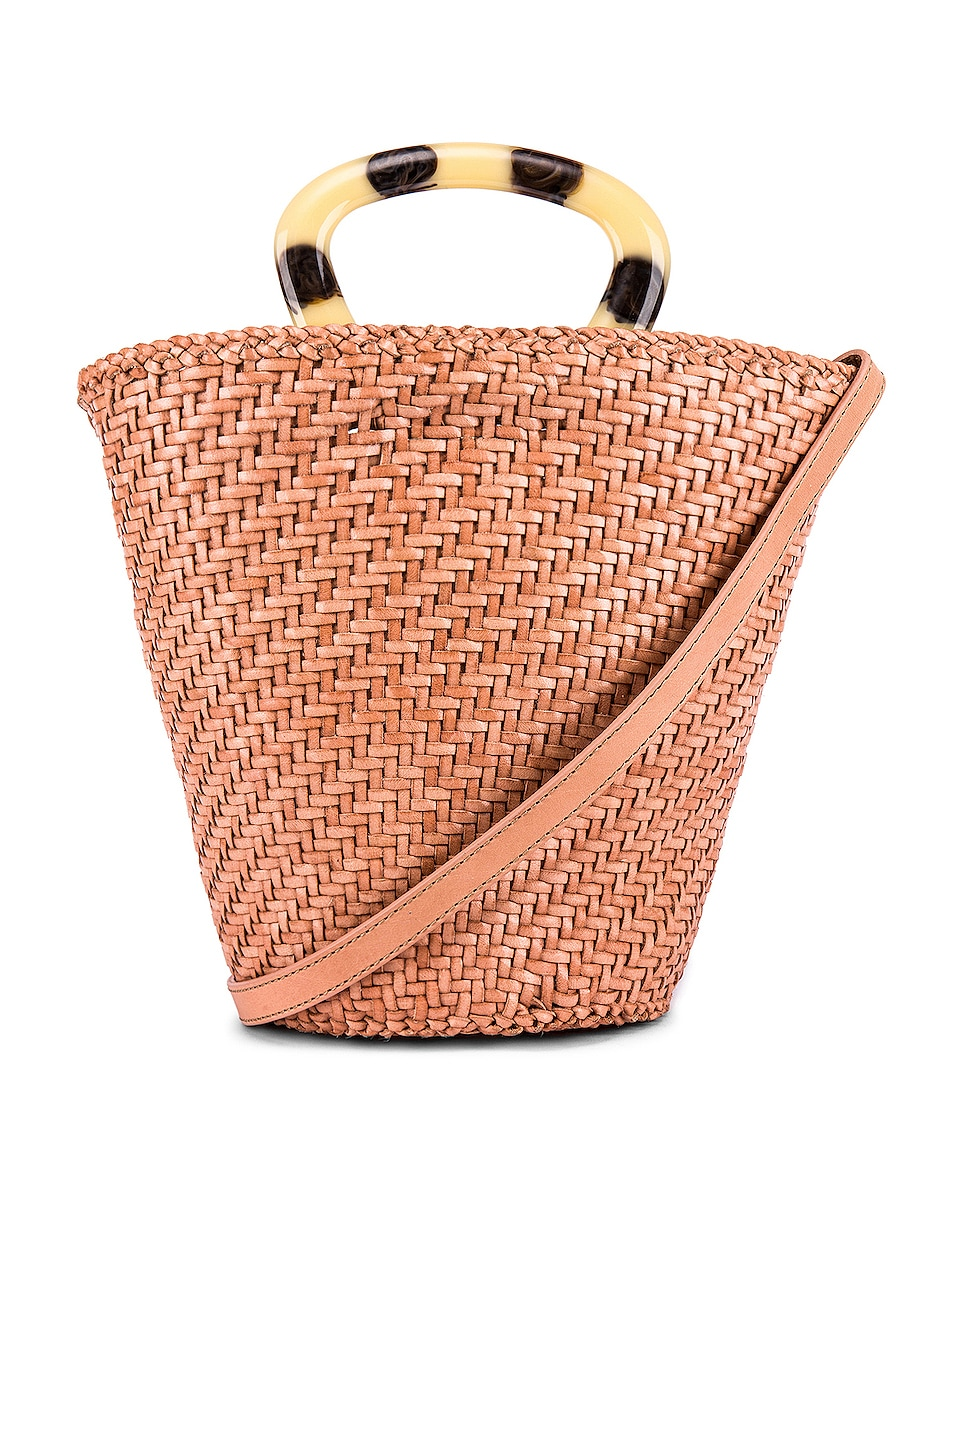 Loeffler Randall Woven Fan Tote in Blush